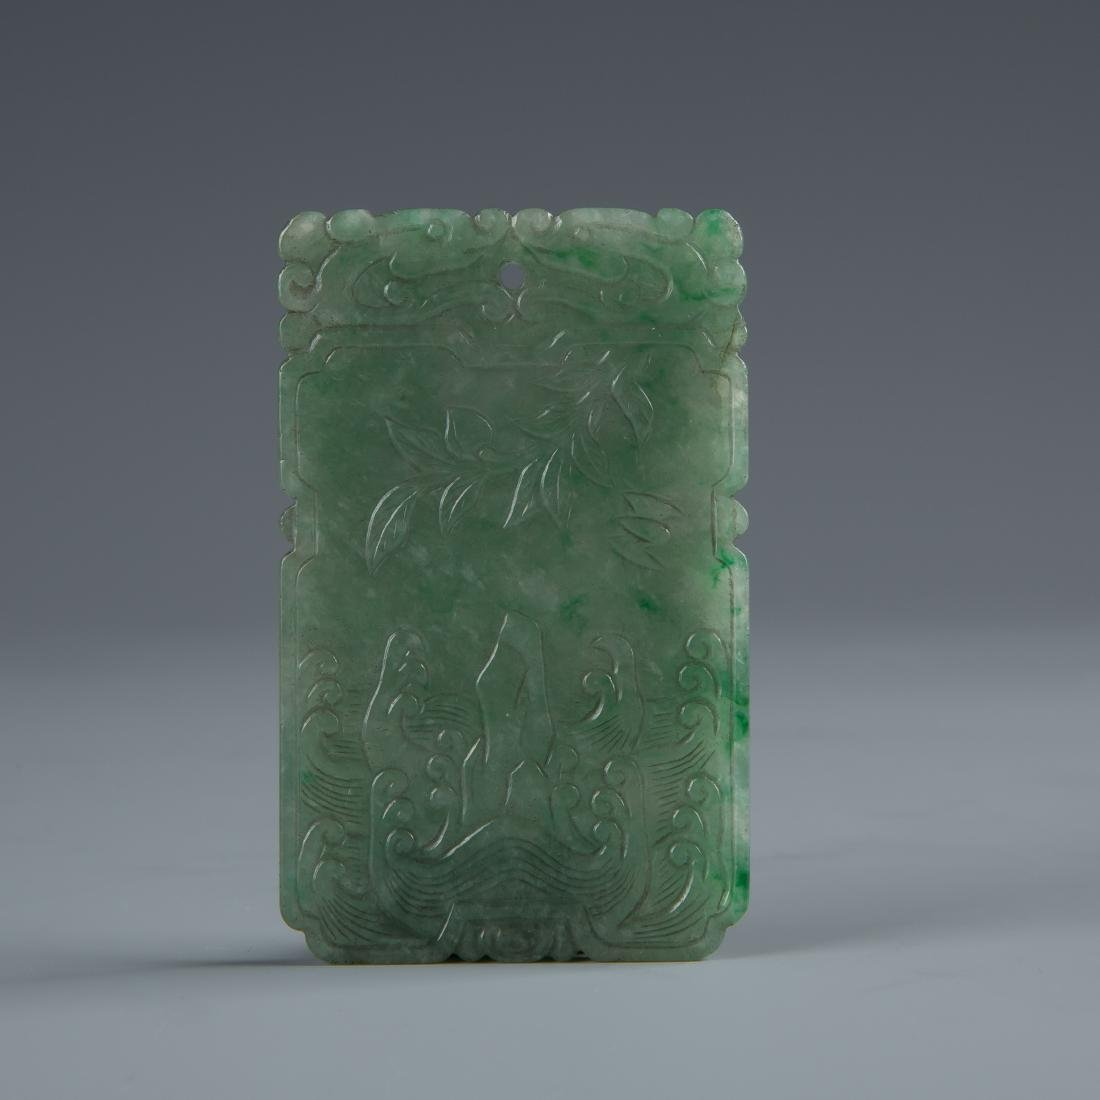 Carved Green Jade Pendant with Mark